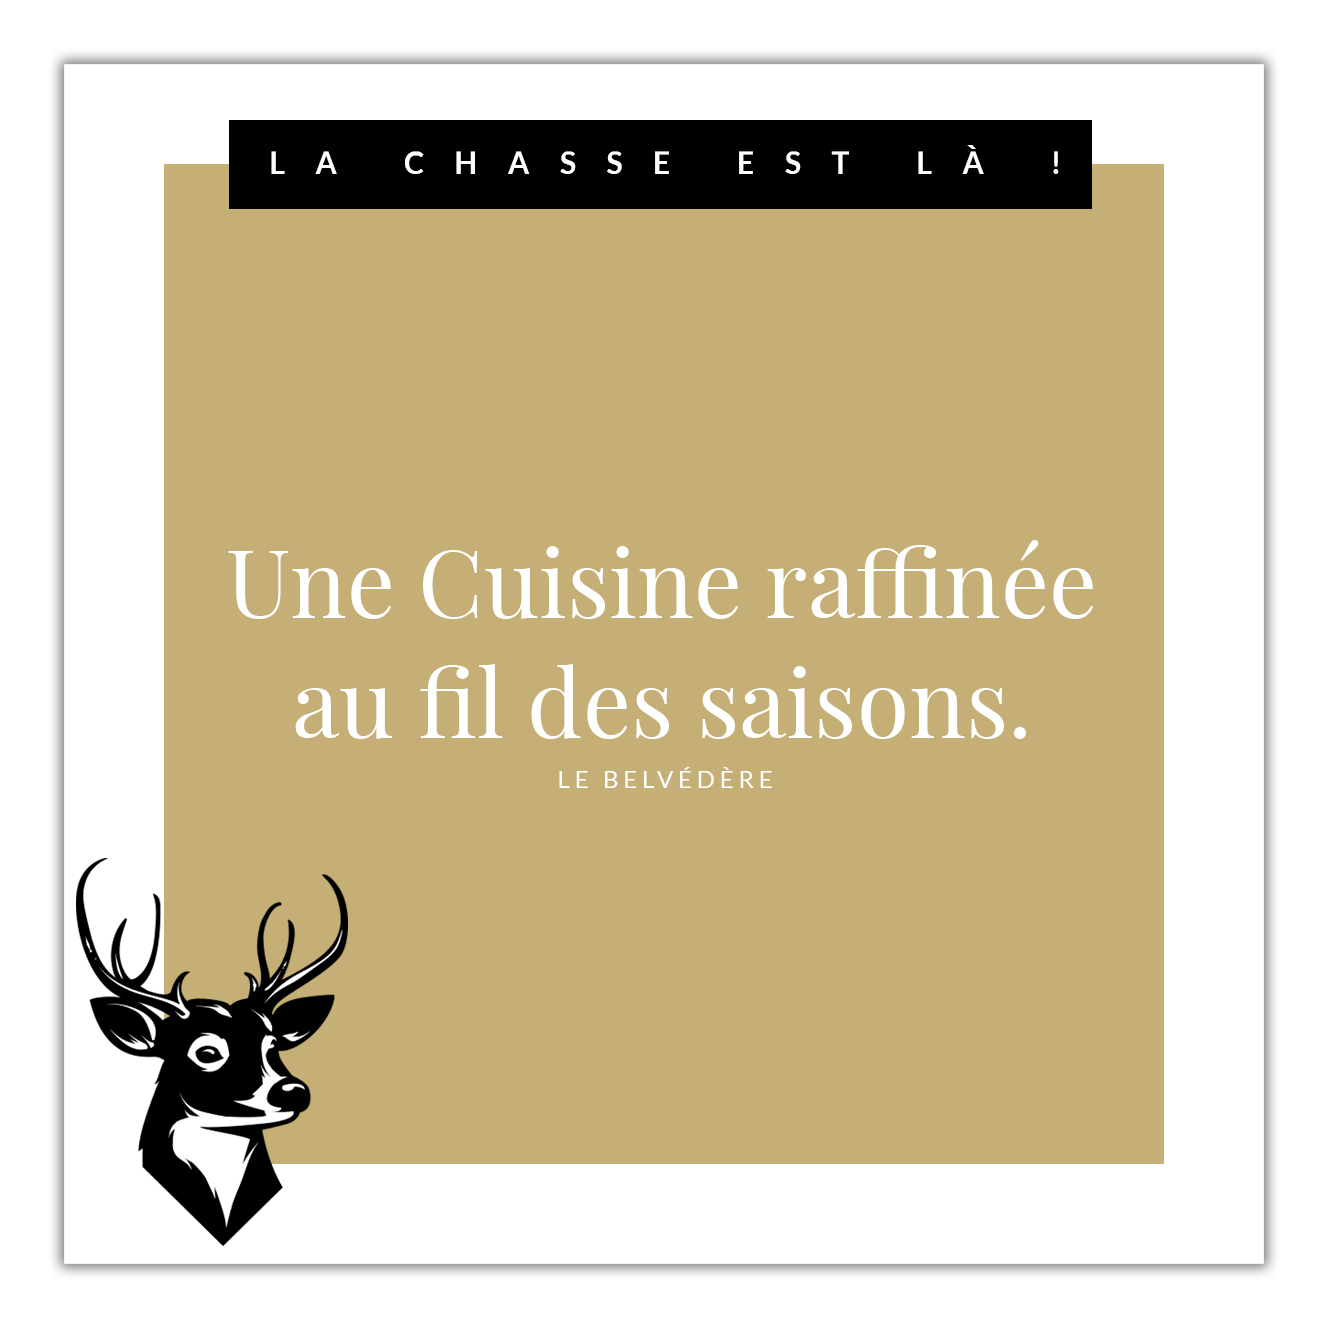 chasse.png